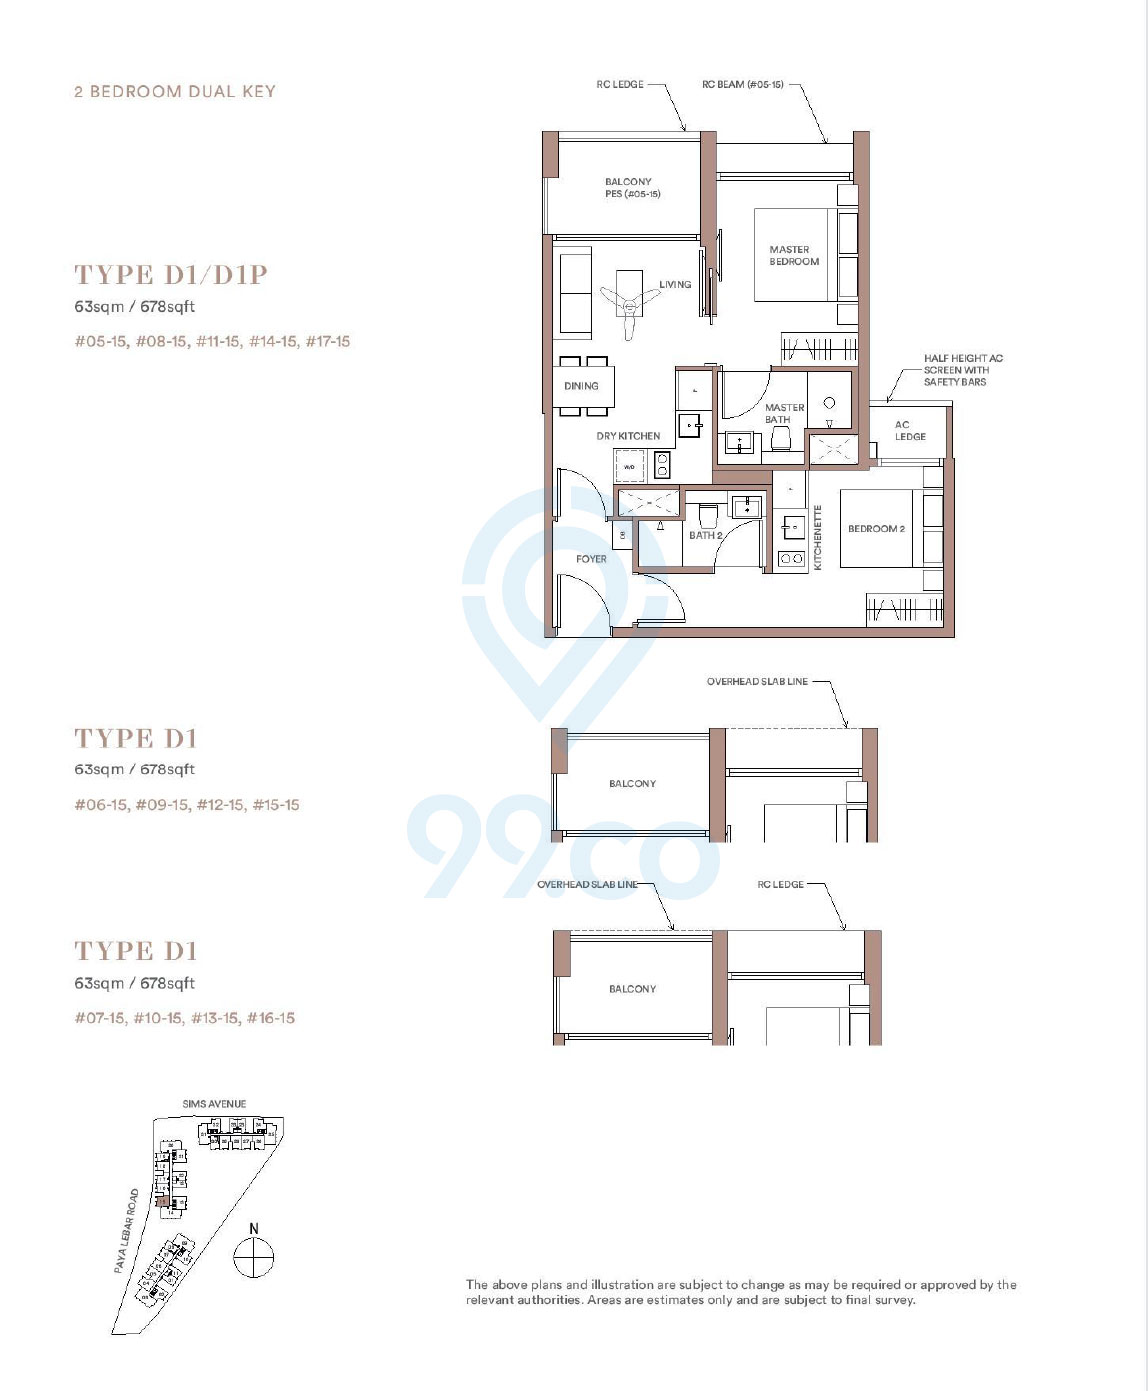 Park Place Residences 2 Bedroom Dual Key Floor Plan